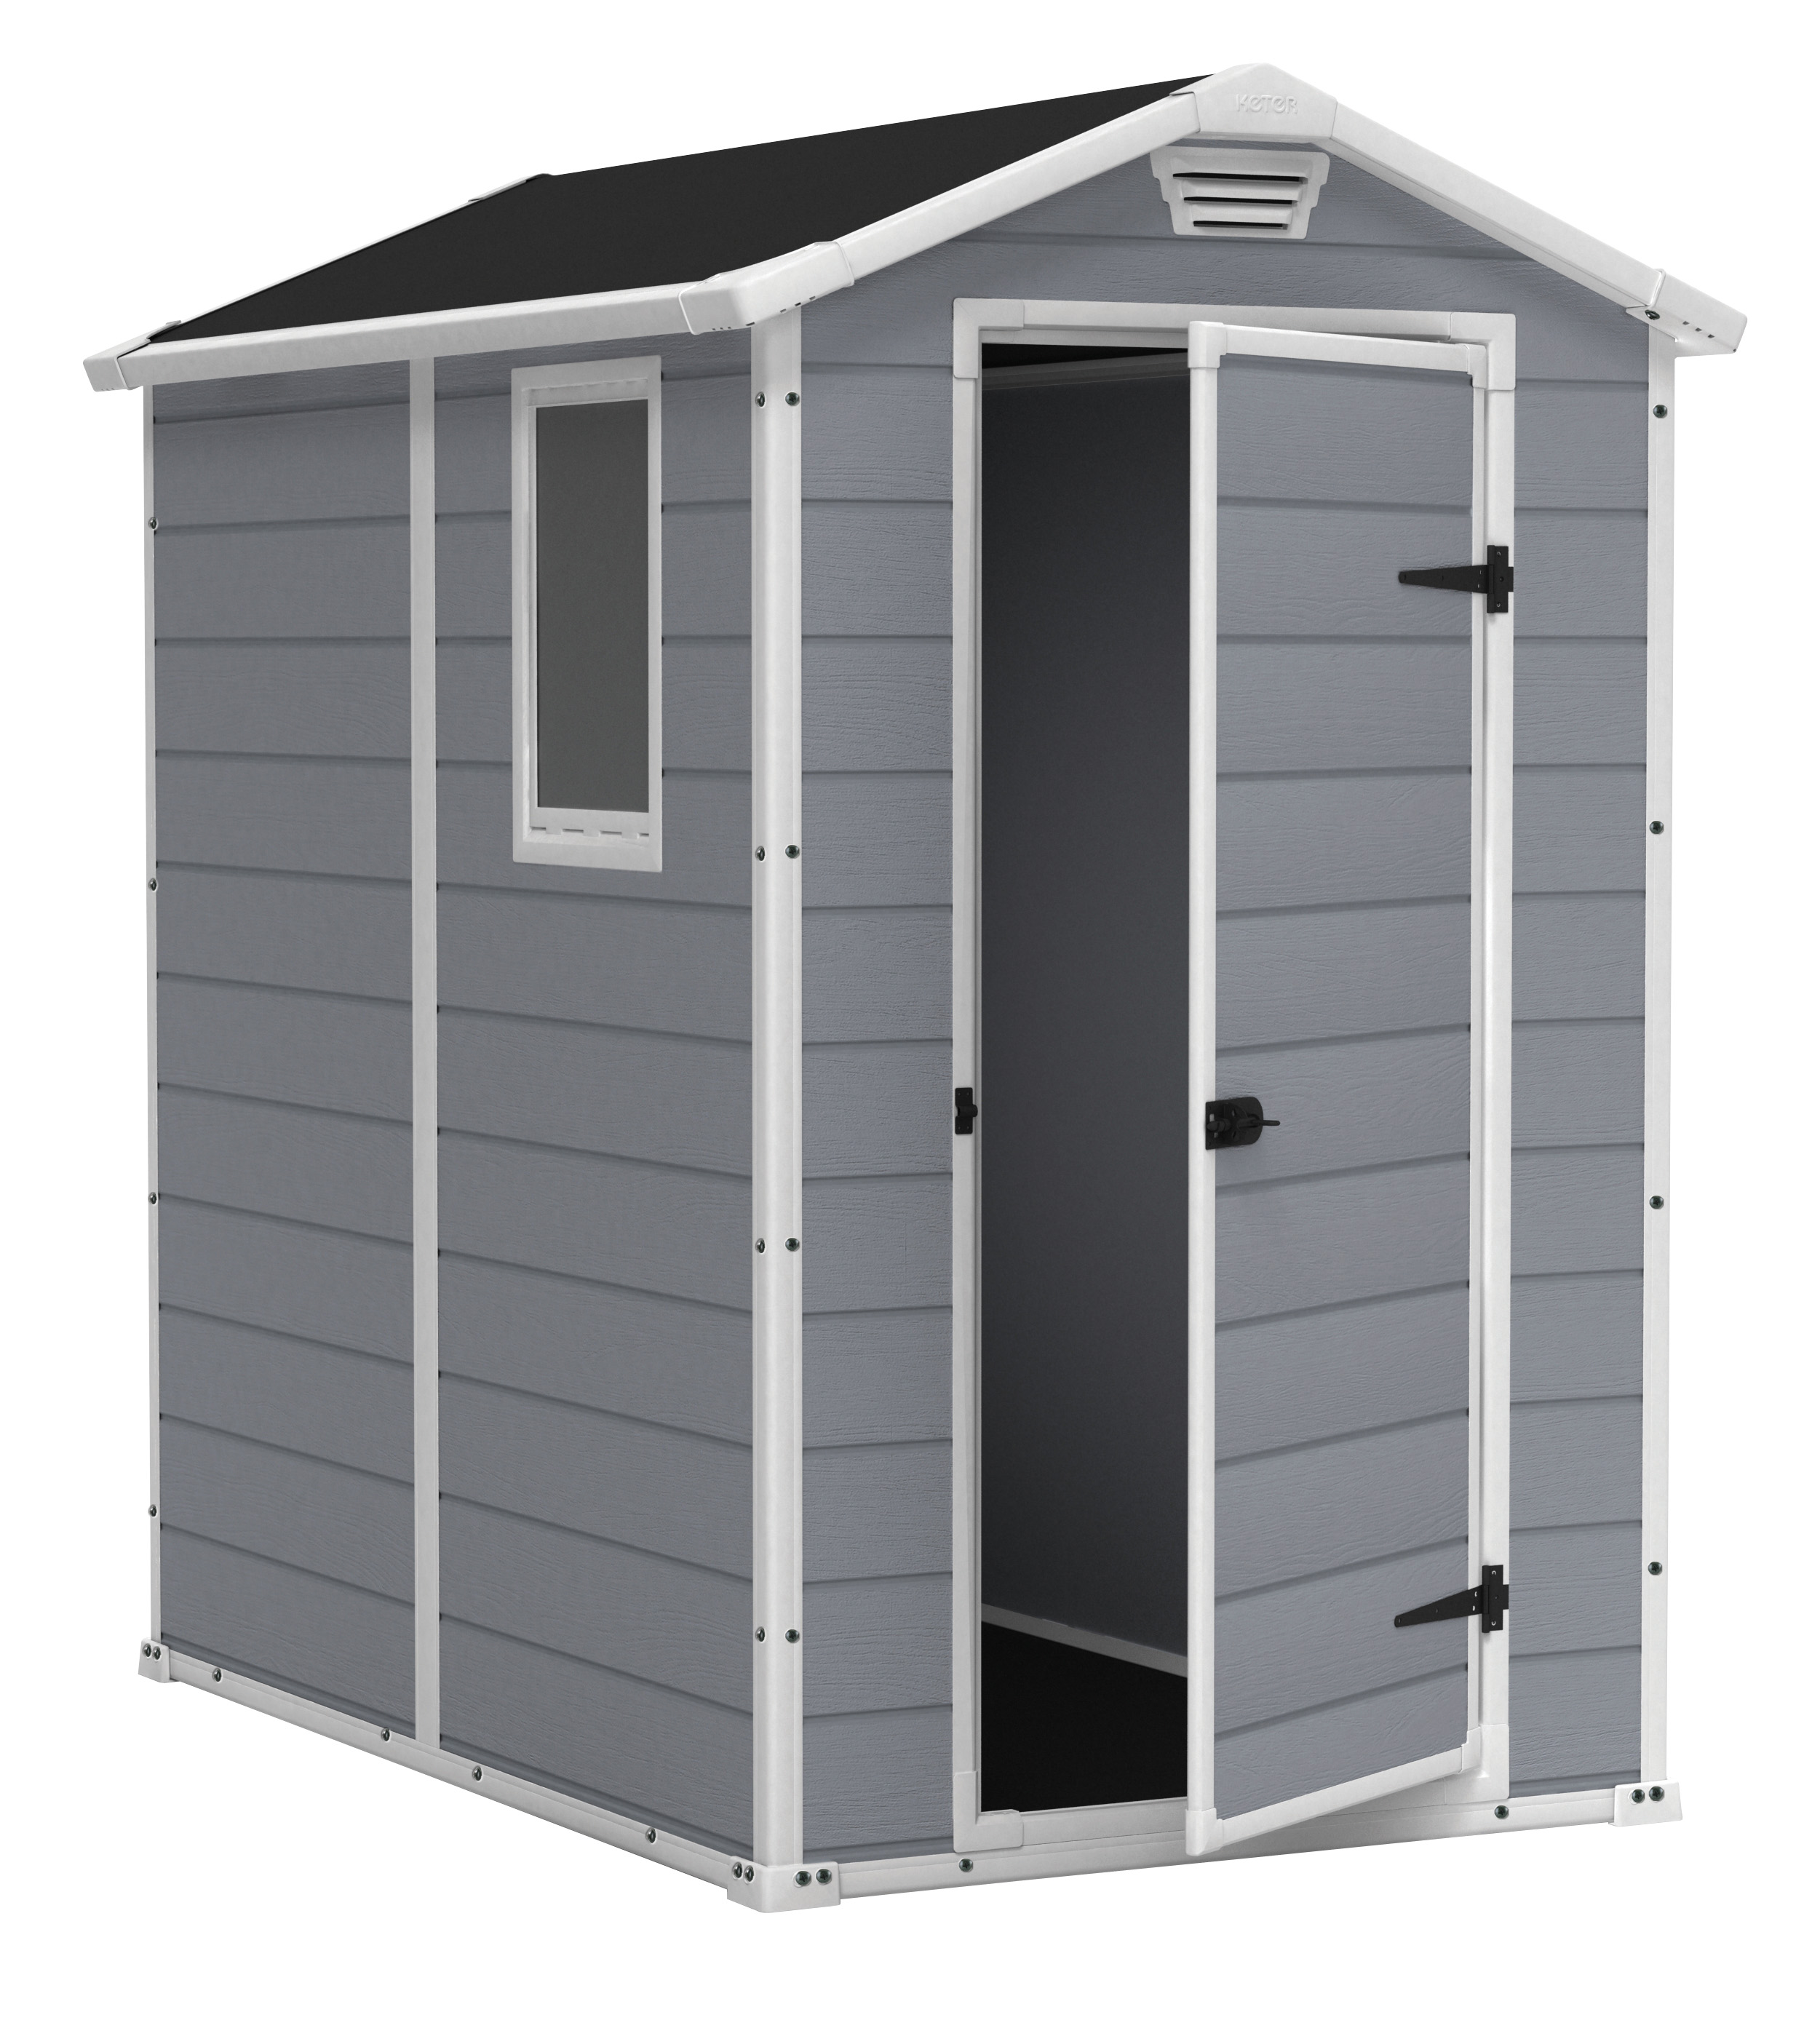 Keter Manor 4' x 6' Resin Storage Shed, All-Weather Plastic Outdoor Storage, Gray White by Keter